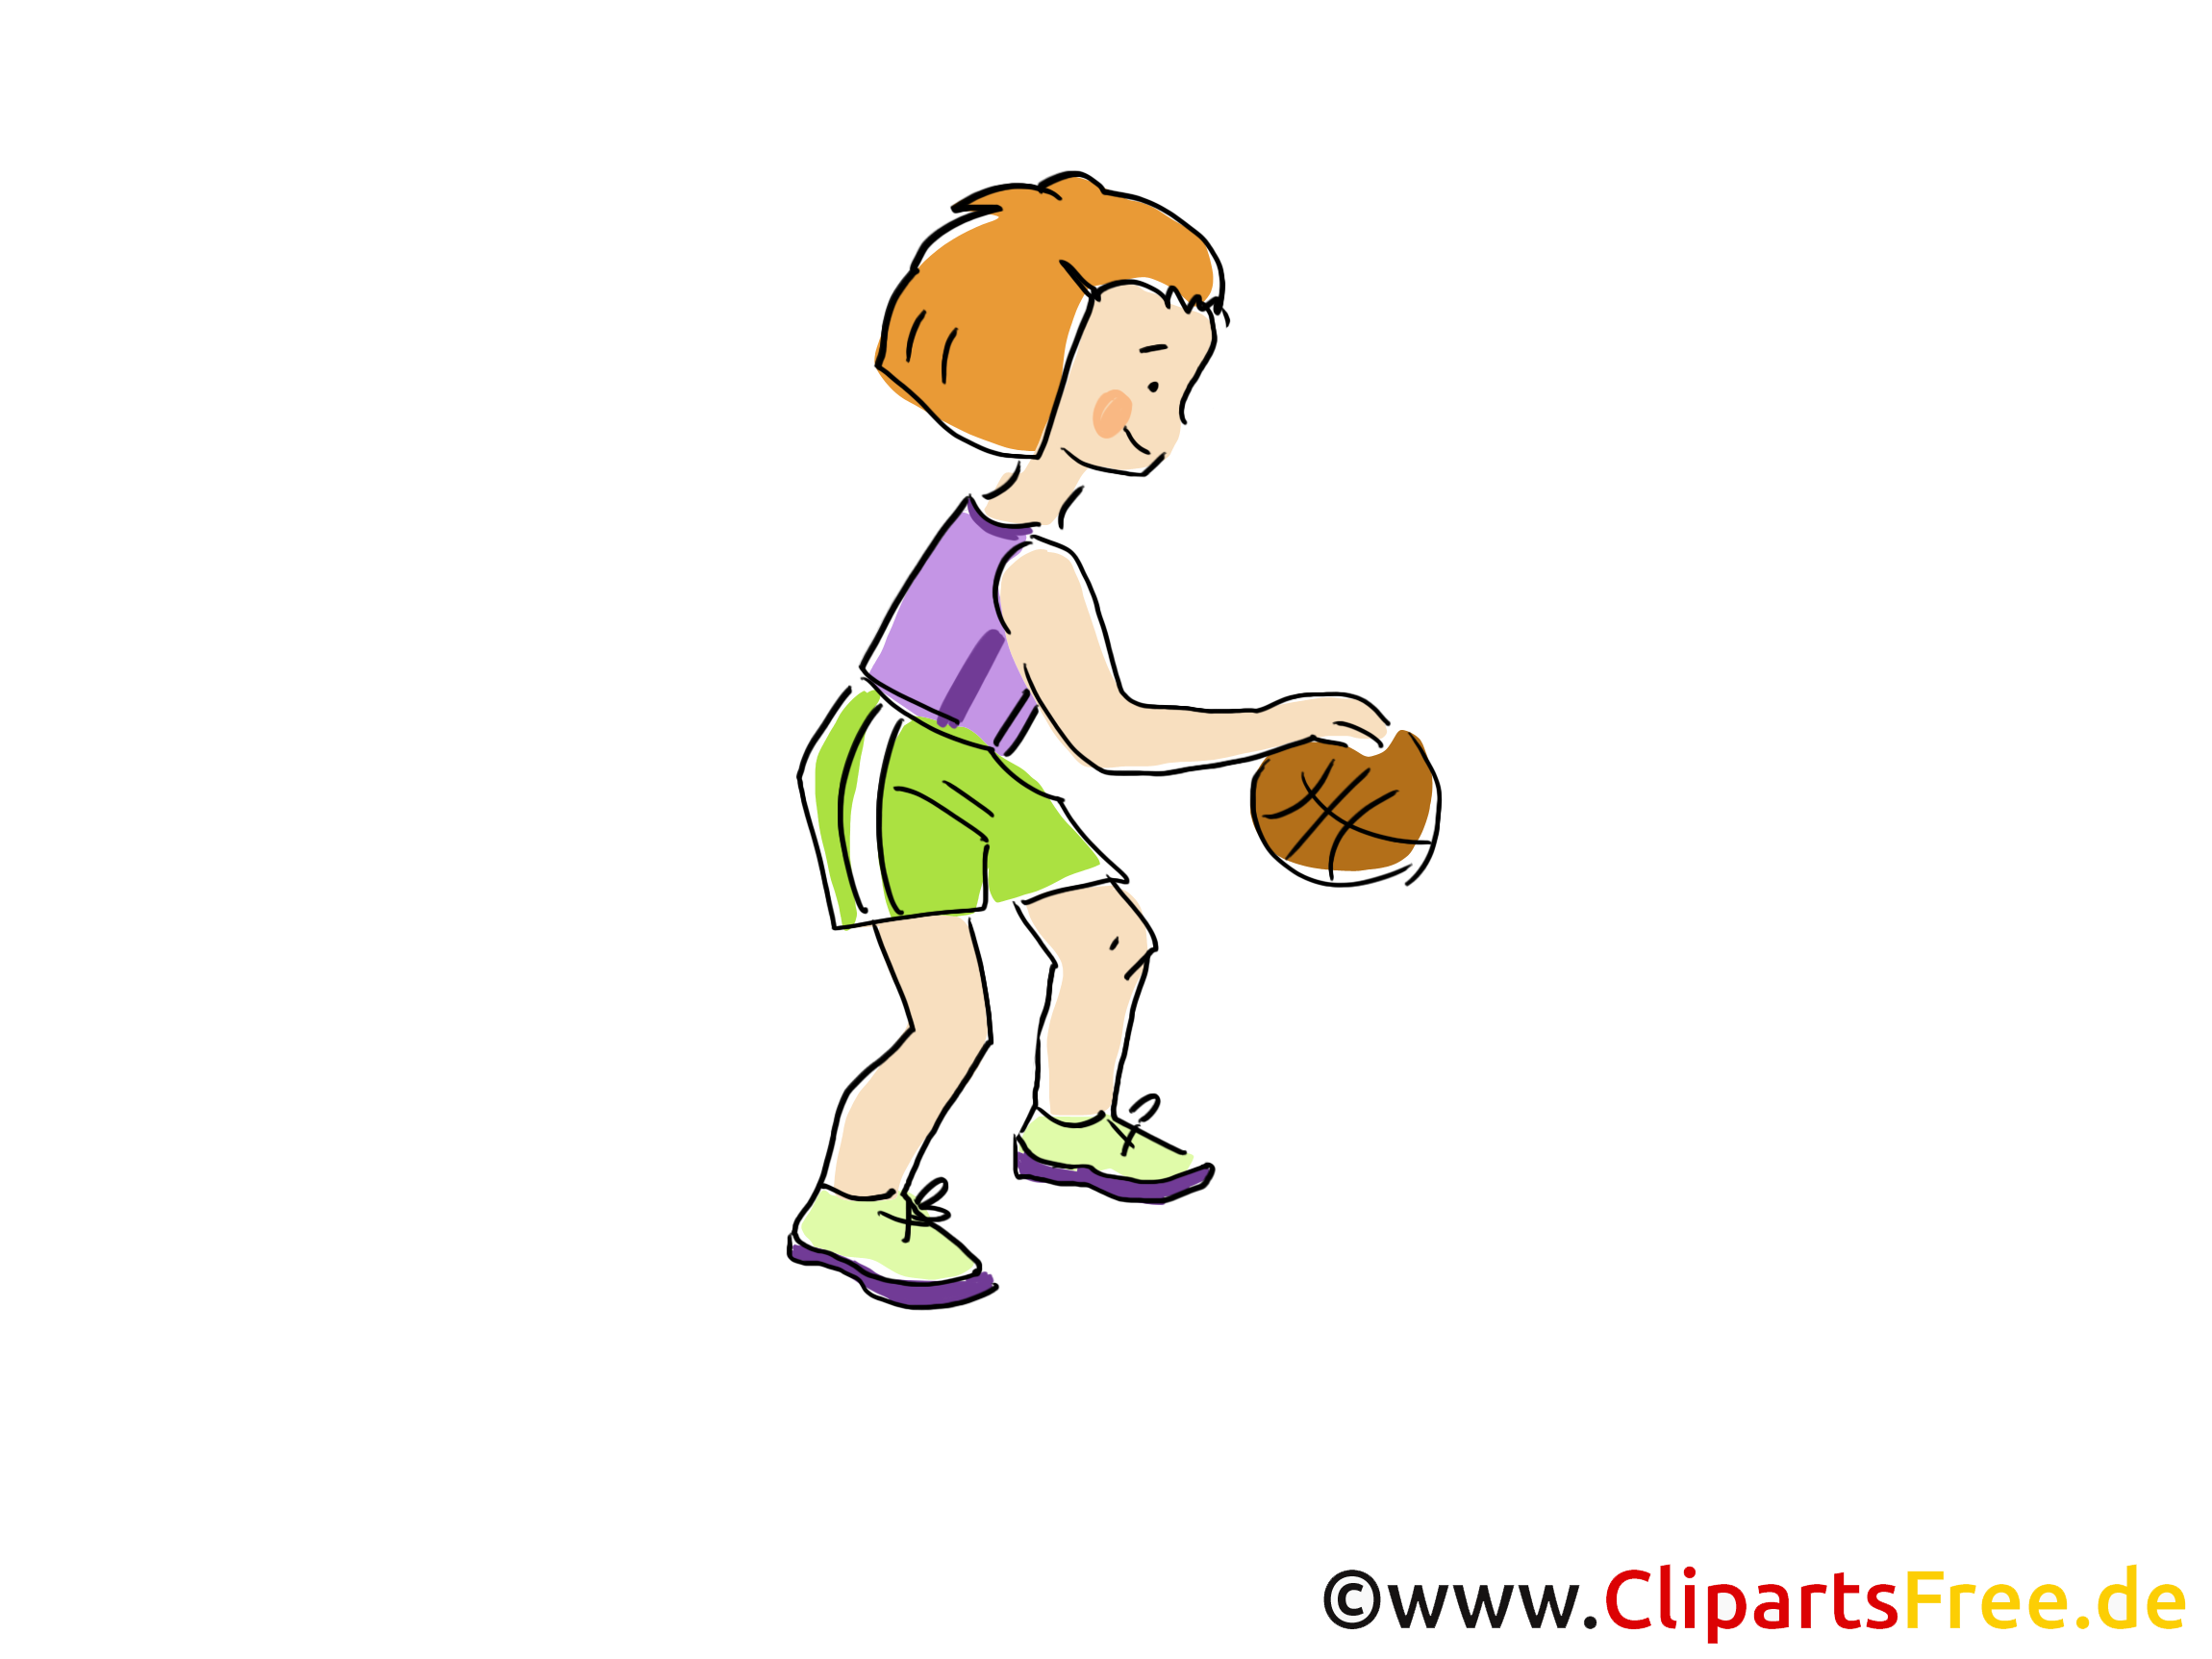 Child Playing Basketball Afbeelding, Clipart, Strip, Cartoon, Afbeelding gratis